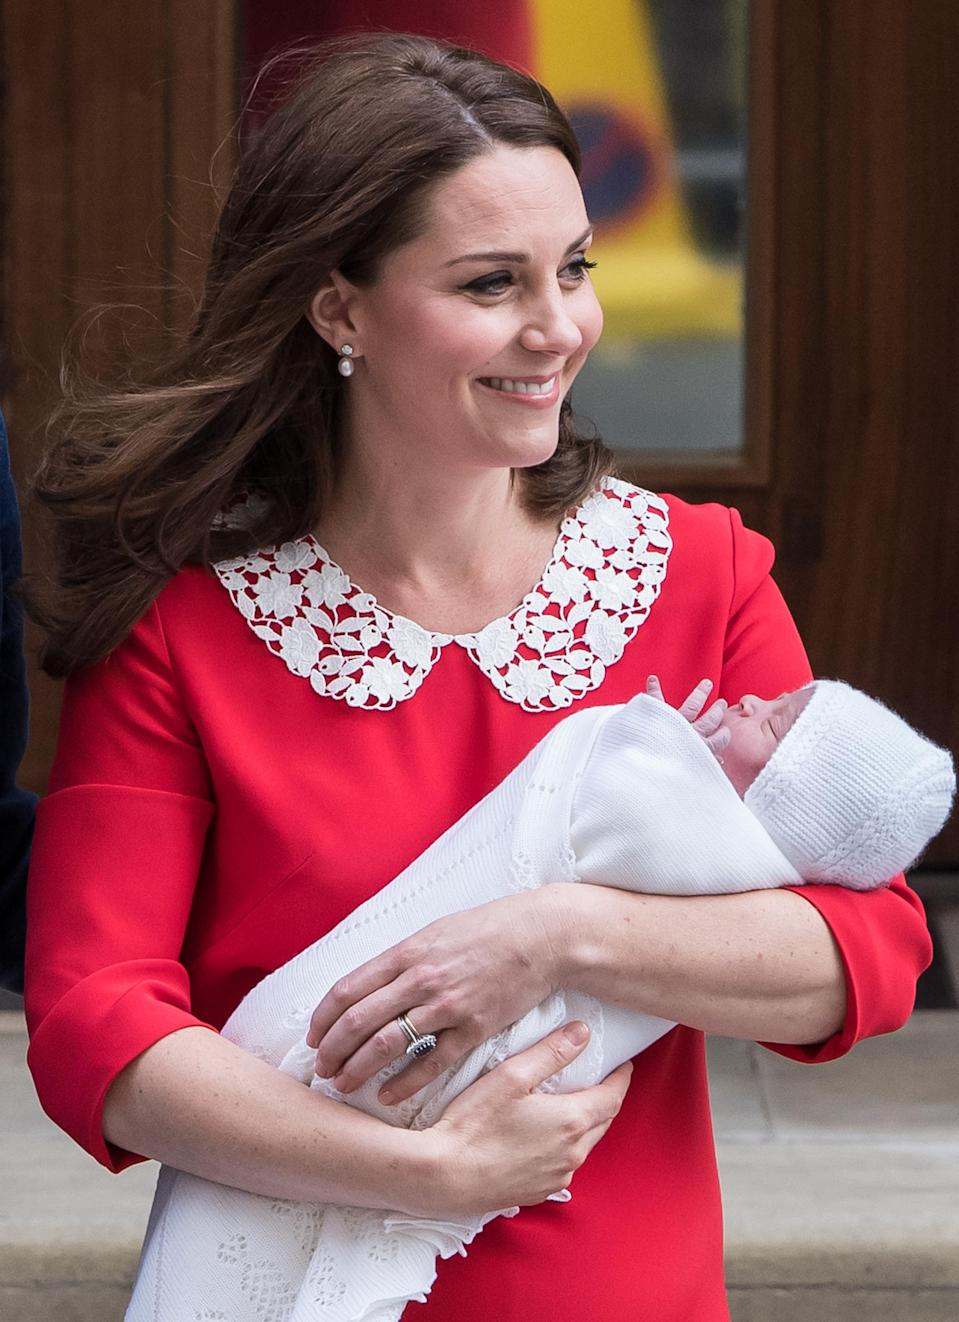 Prince Louis made his public debut just hours after his birth on April 23. (Photo: Samir Hussein/WireImage)